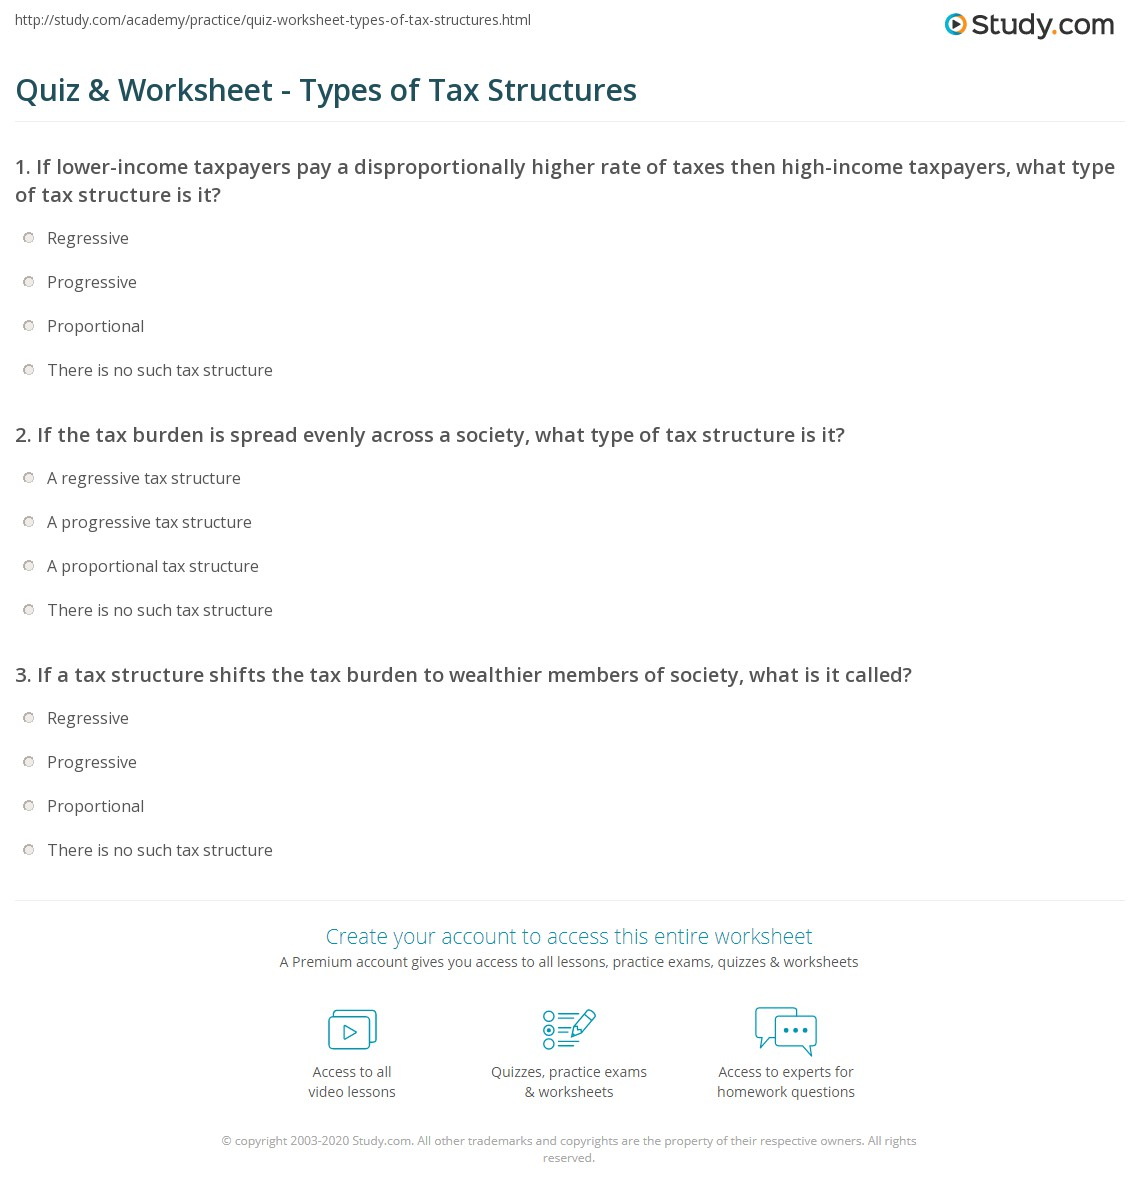 Quiz worksheet types of tax structures study if the tax burden is spread evenly across a society what type of tax structure is it xflitez Images